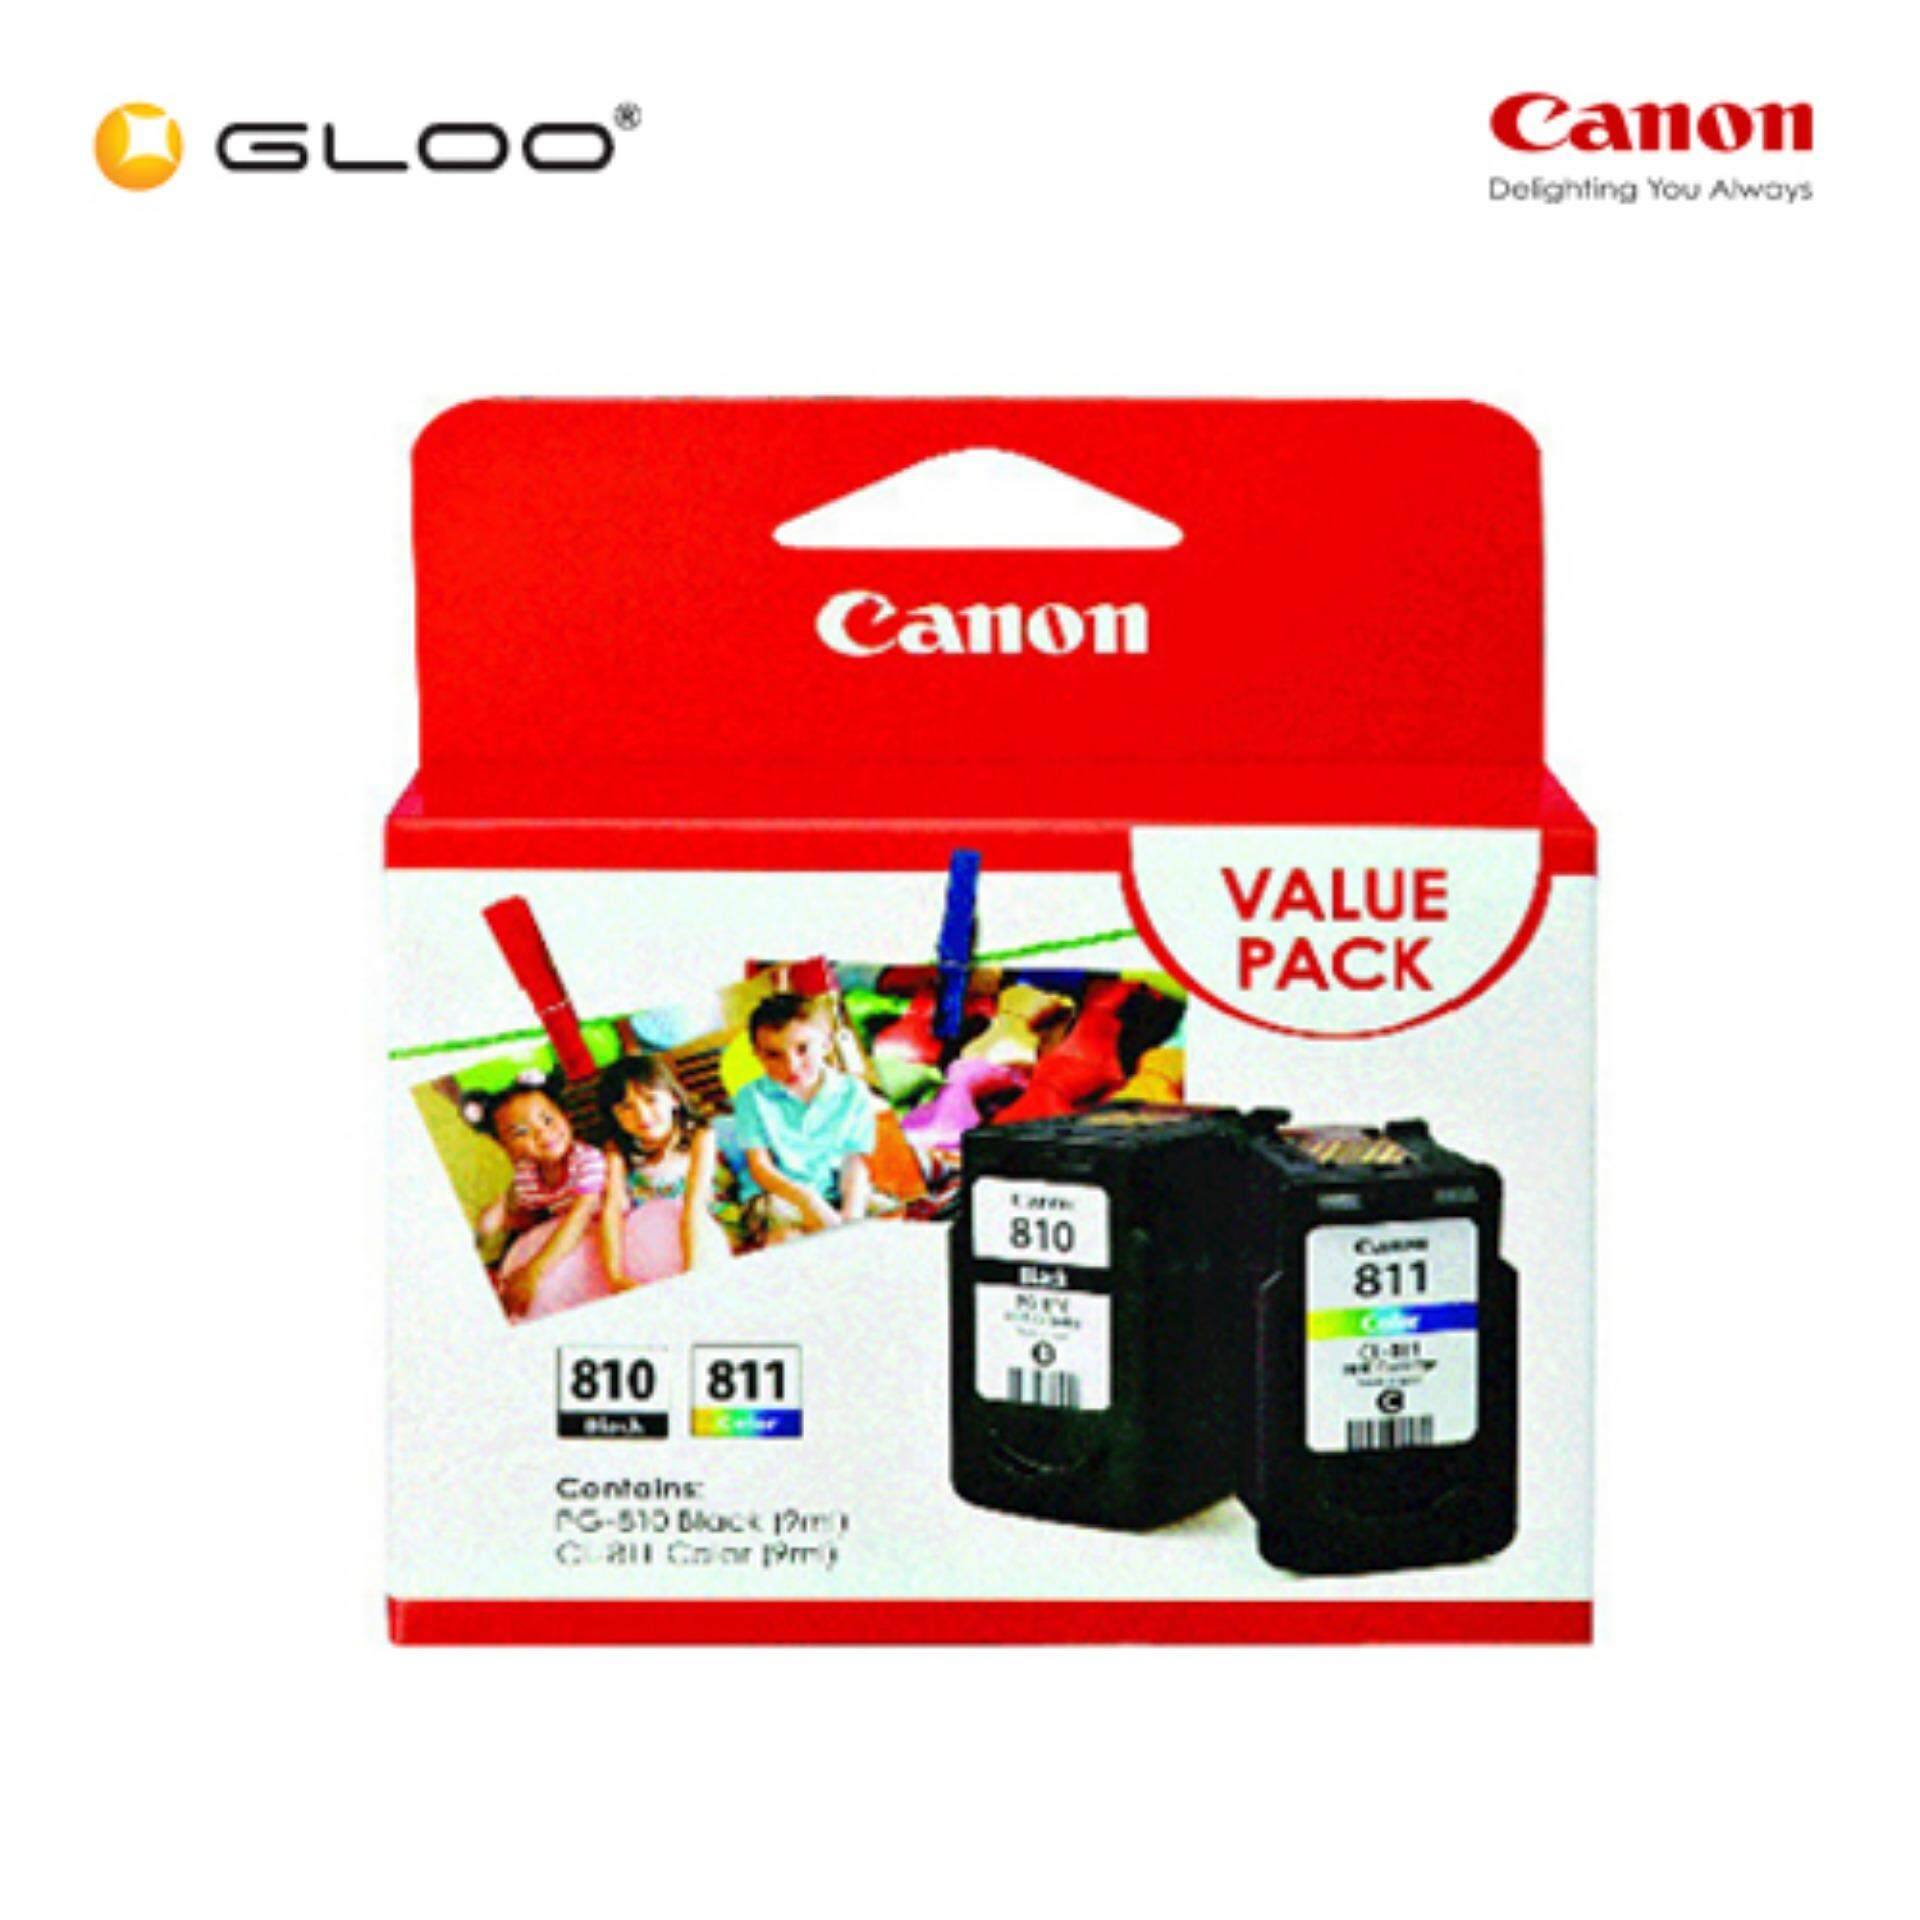 Canon Fine Value Pack (PG810+CL811)